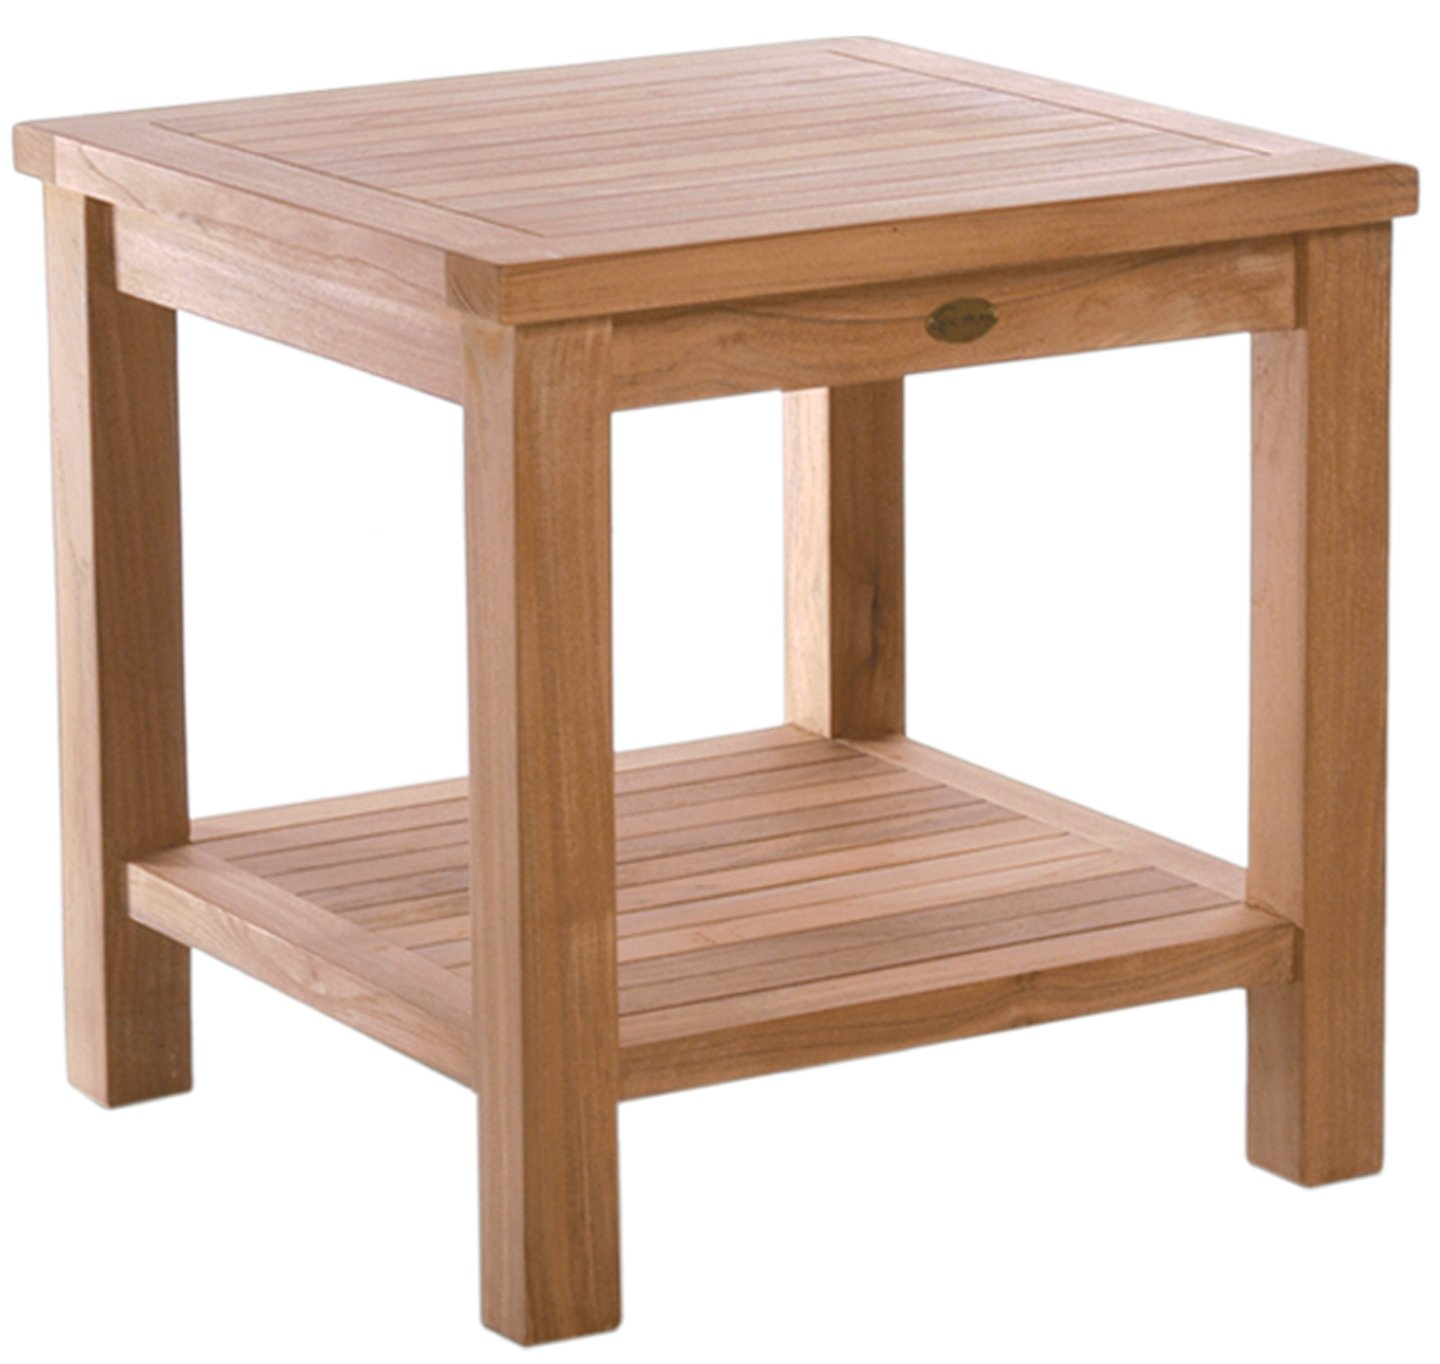 top outdoor side table reviews best patio tables for any teak accent chic made from grade wood garden cream bedside lamps affordable home decor inside barn doors pulaski furniture